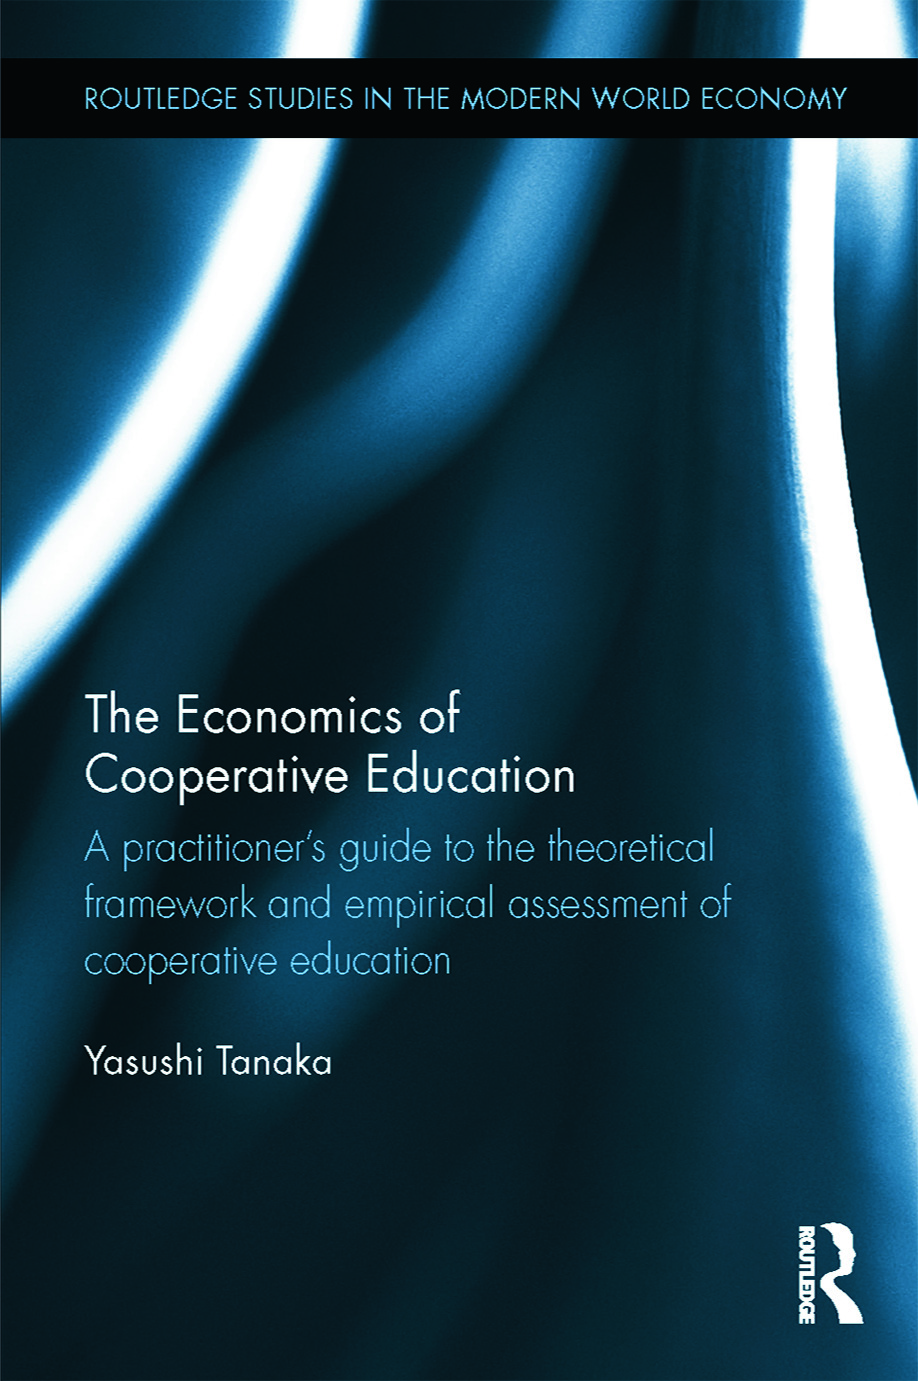 History, present state, and defi nition of cooperative education (1) The history of cooperative education – its birth in